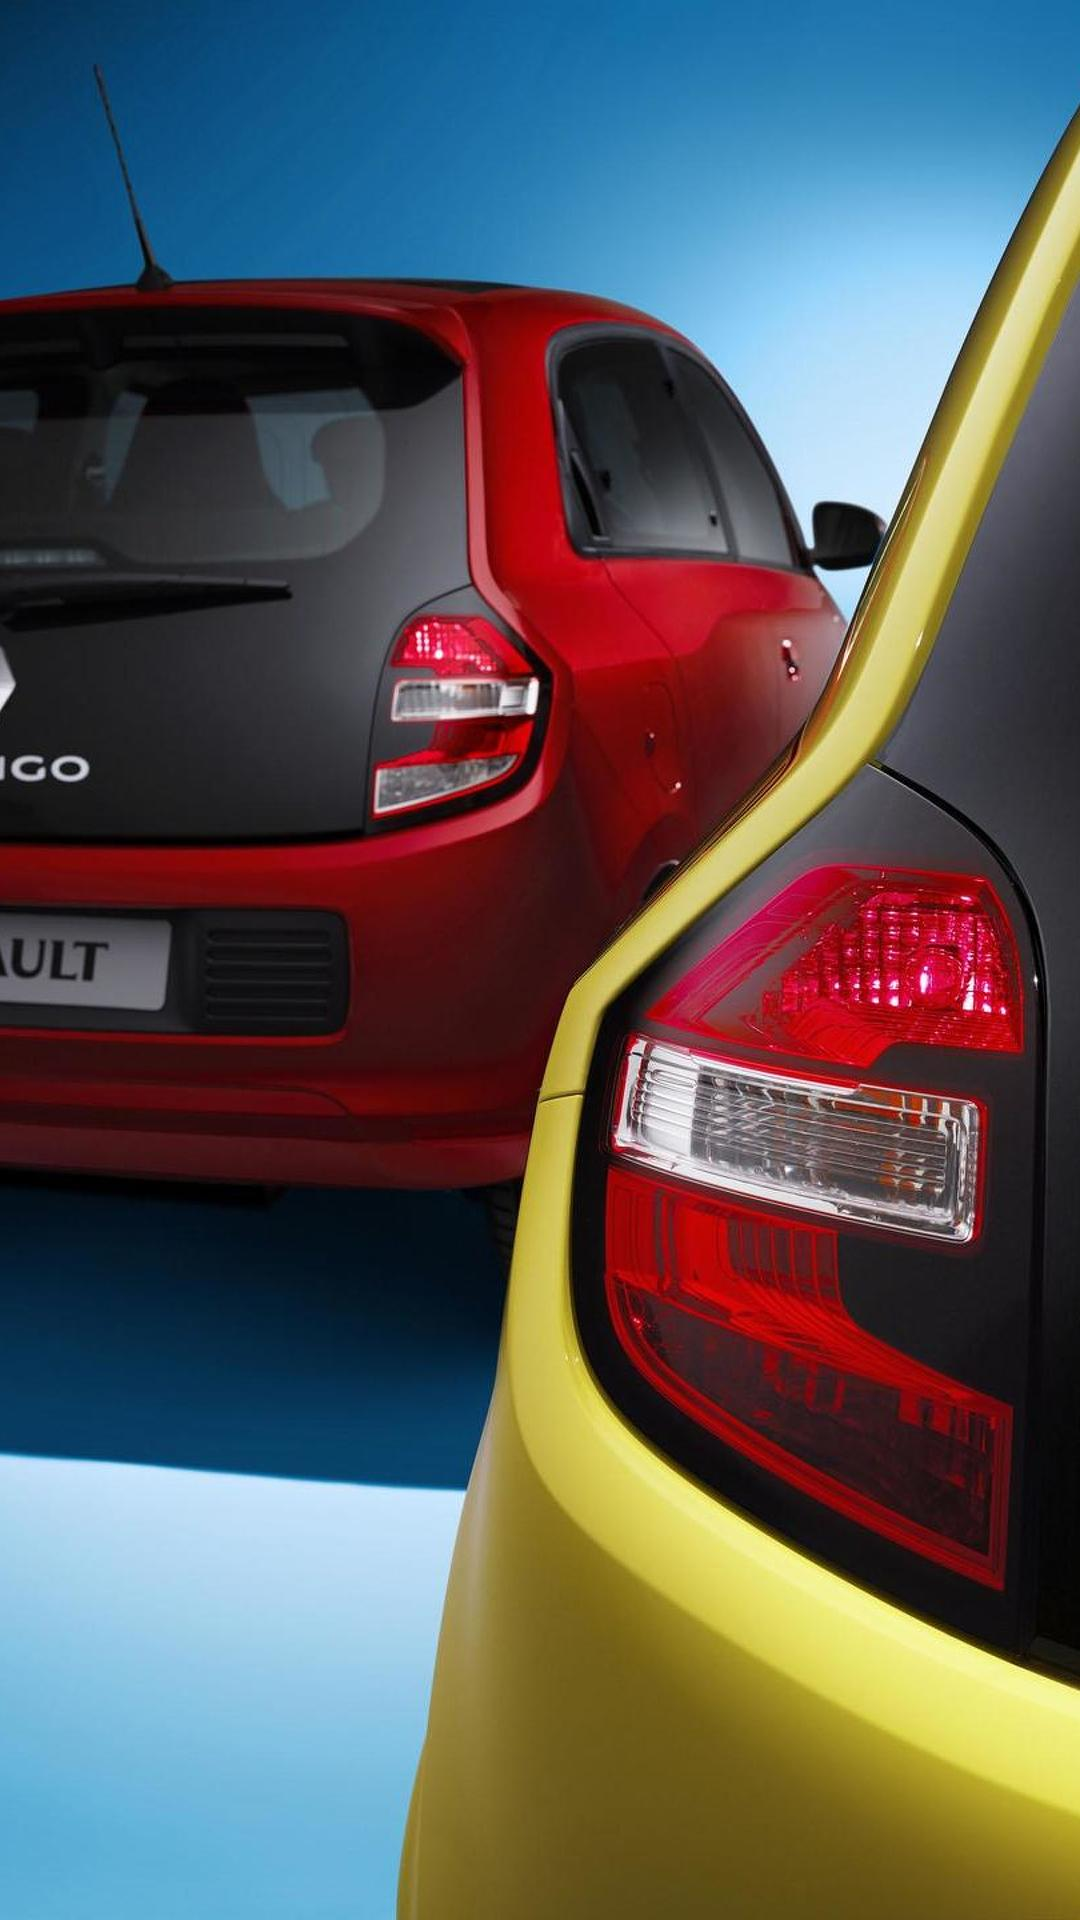 2014 Renault Twingo promises to be an agile, rear-engined fun machine [video]